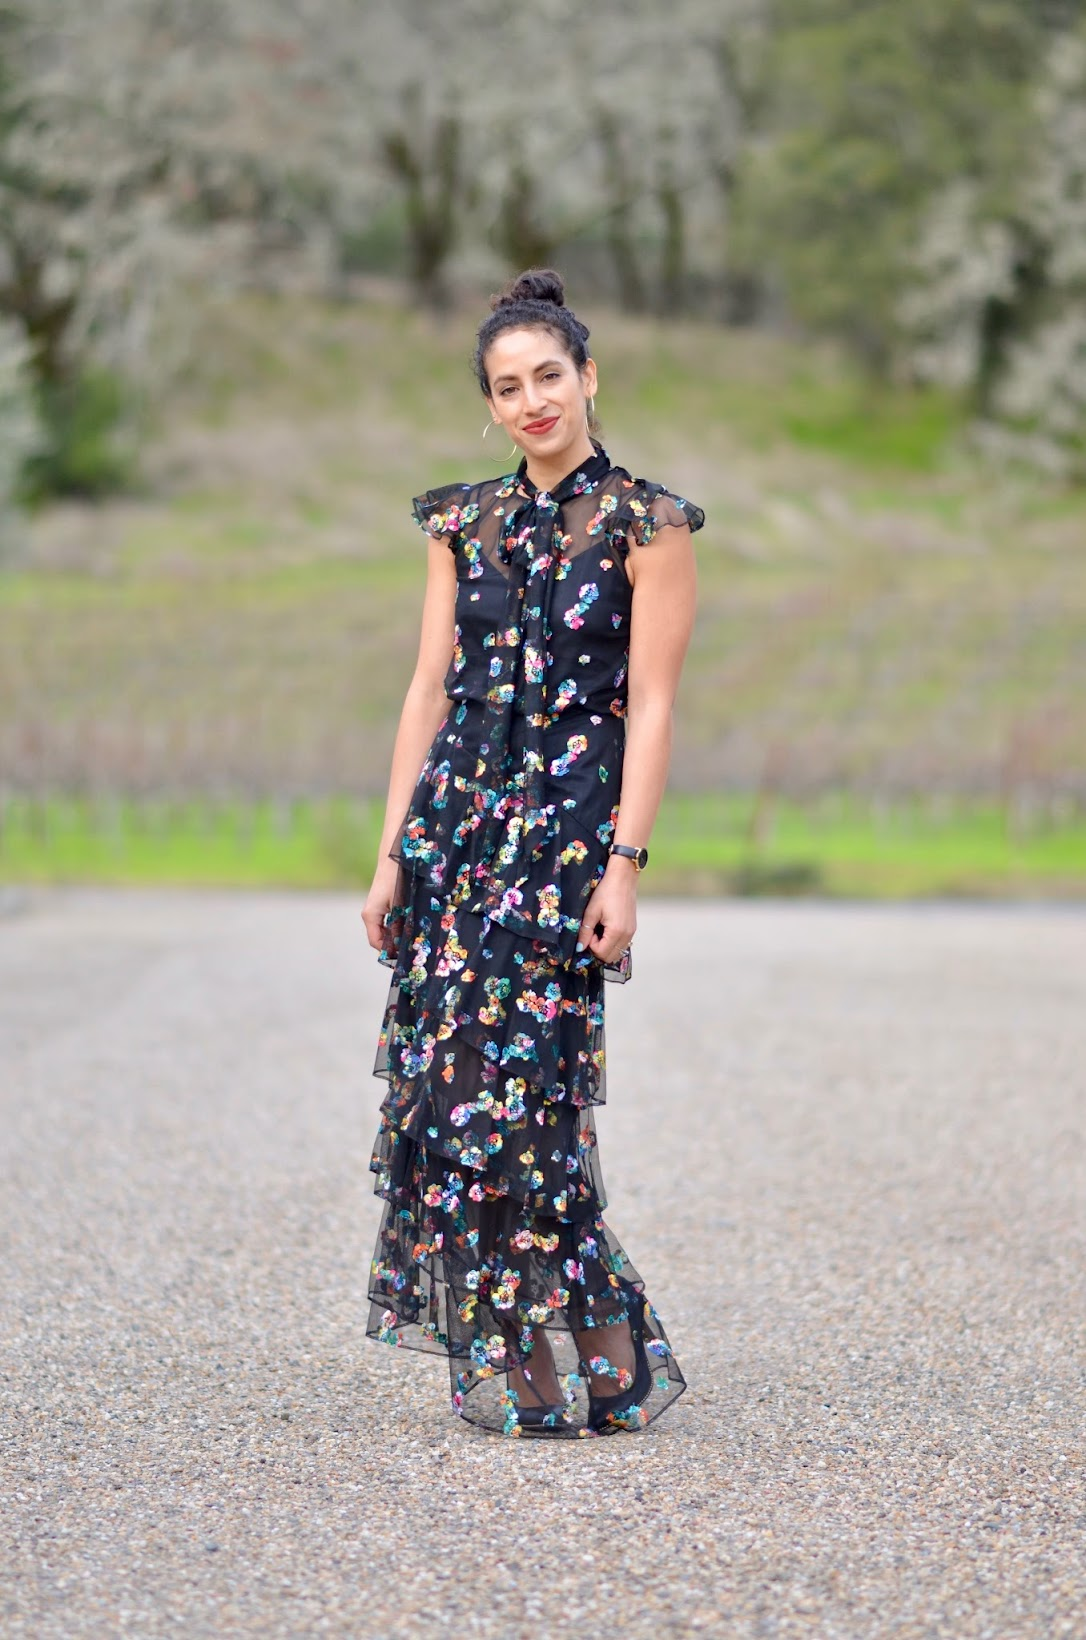 monique lhuillier, ML monique lhuillier, wine country style, best ball gown, how to wear a ball gown, floral ballgown, floral monique lhuillier ball gown